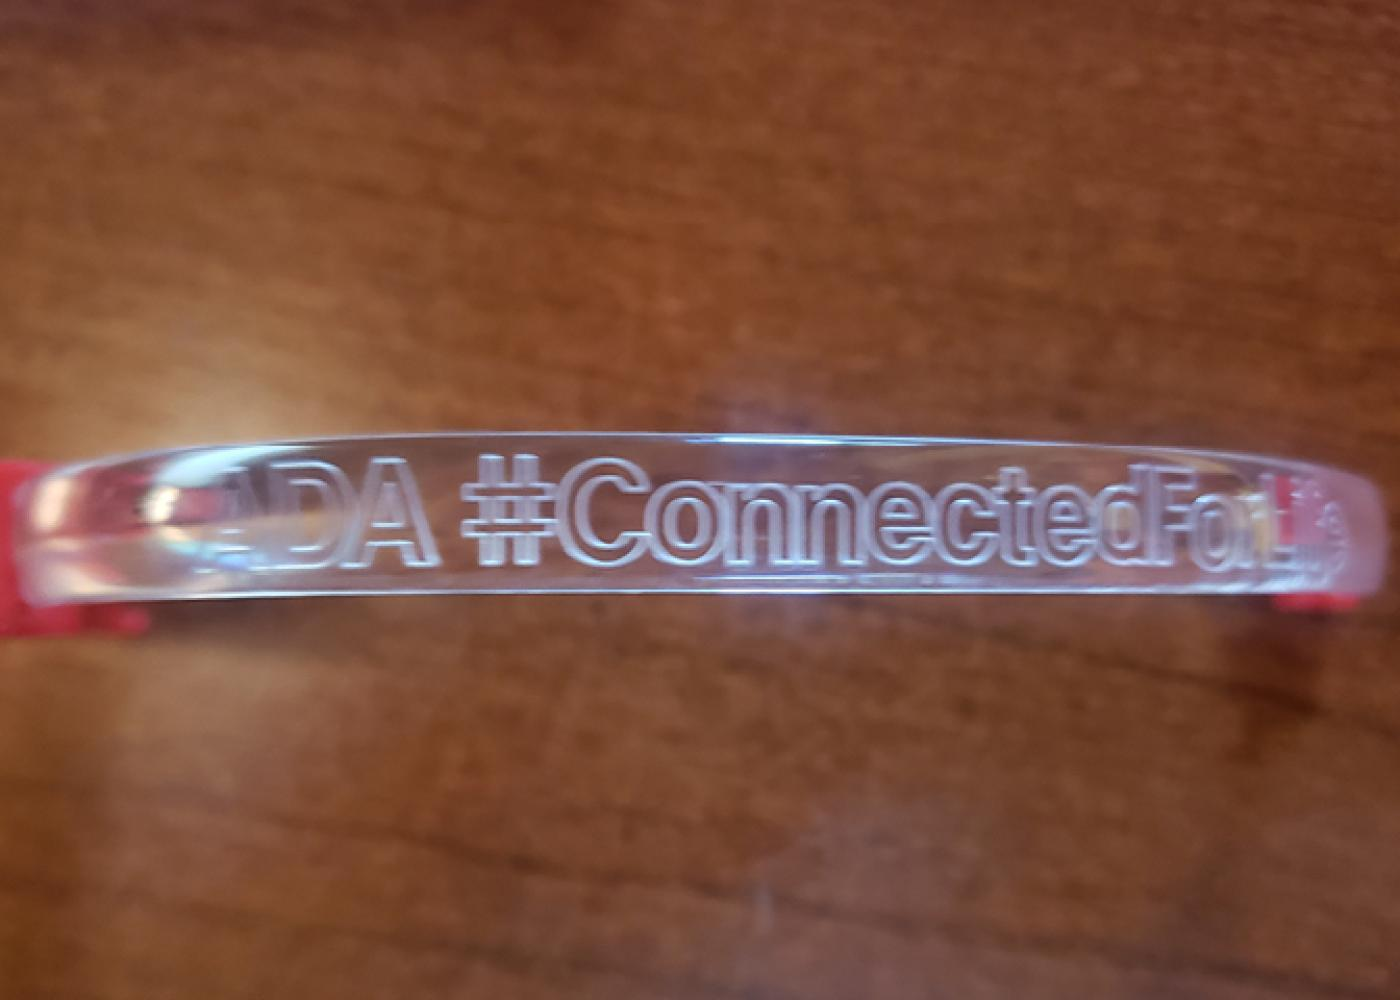 Close-up of ADA#Connected acrylic wrist band